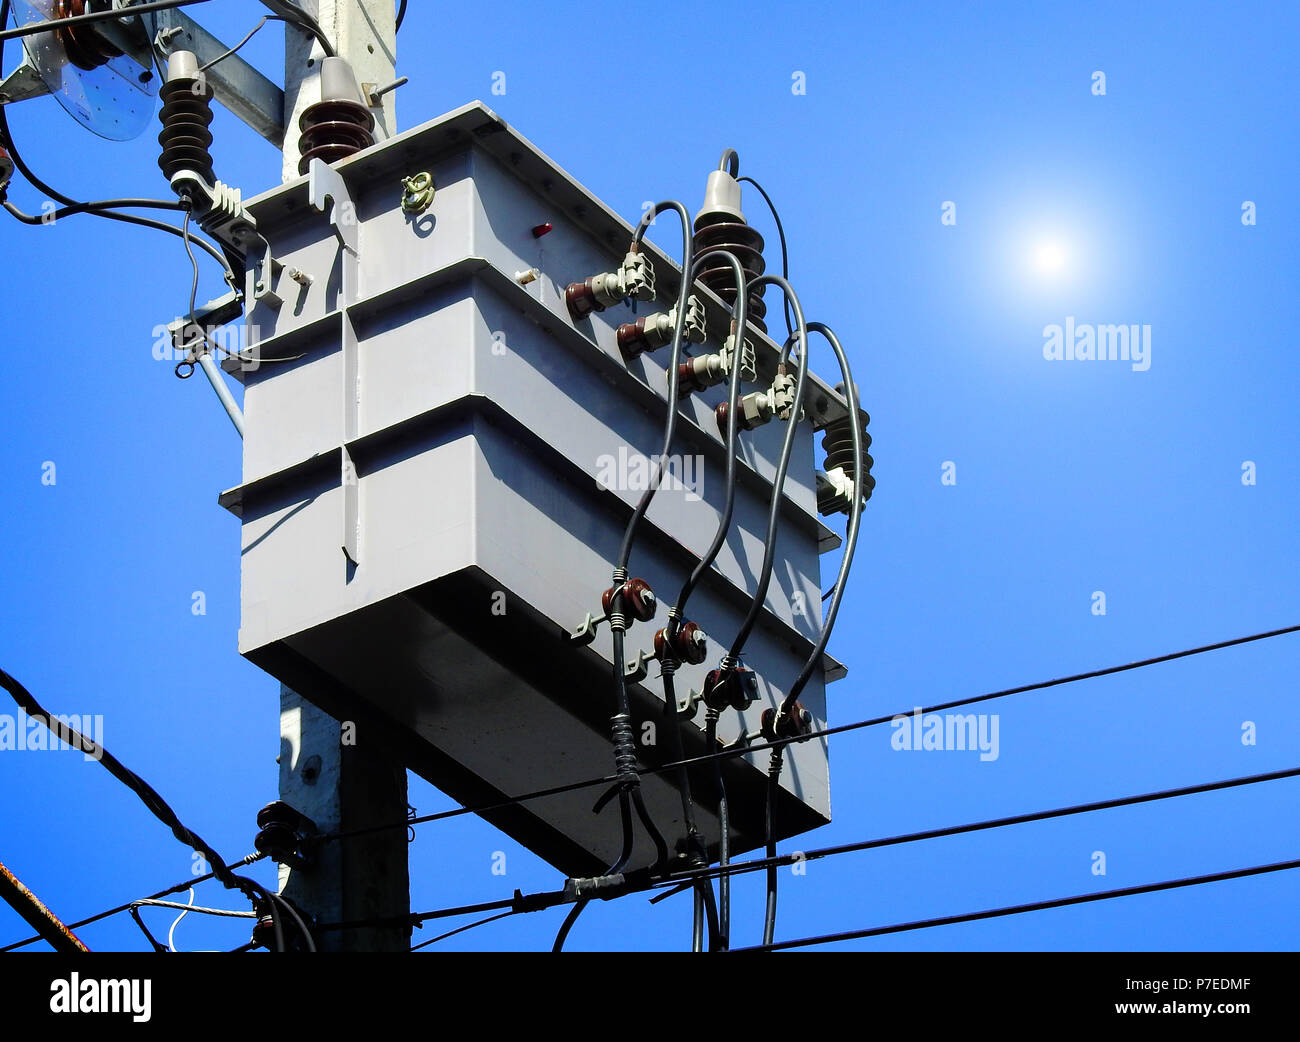 Transformer Wiring Stock Photos Images Two Transformers In Series A Is An Electrical Device That Transfers Energy Between Or More Circuits Through